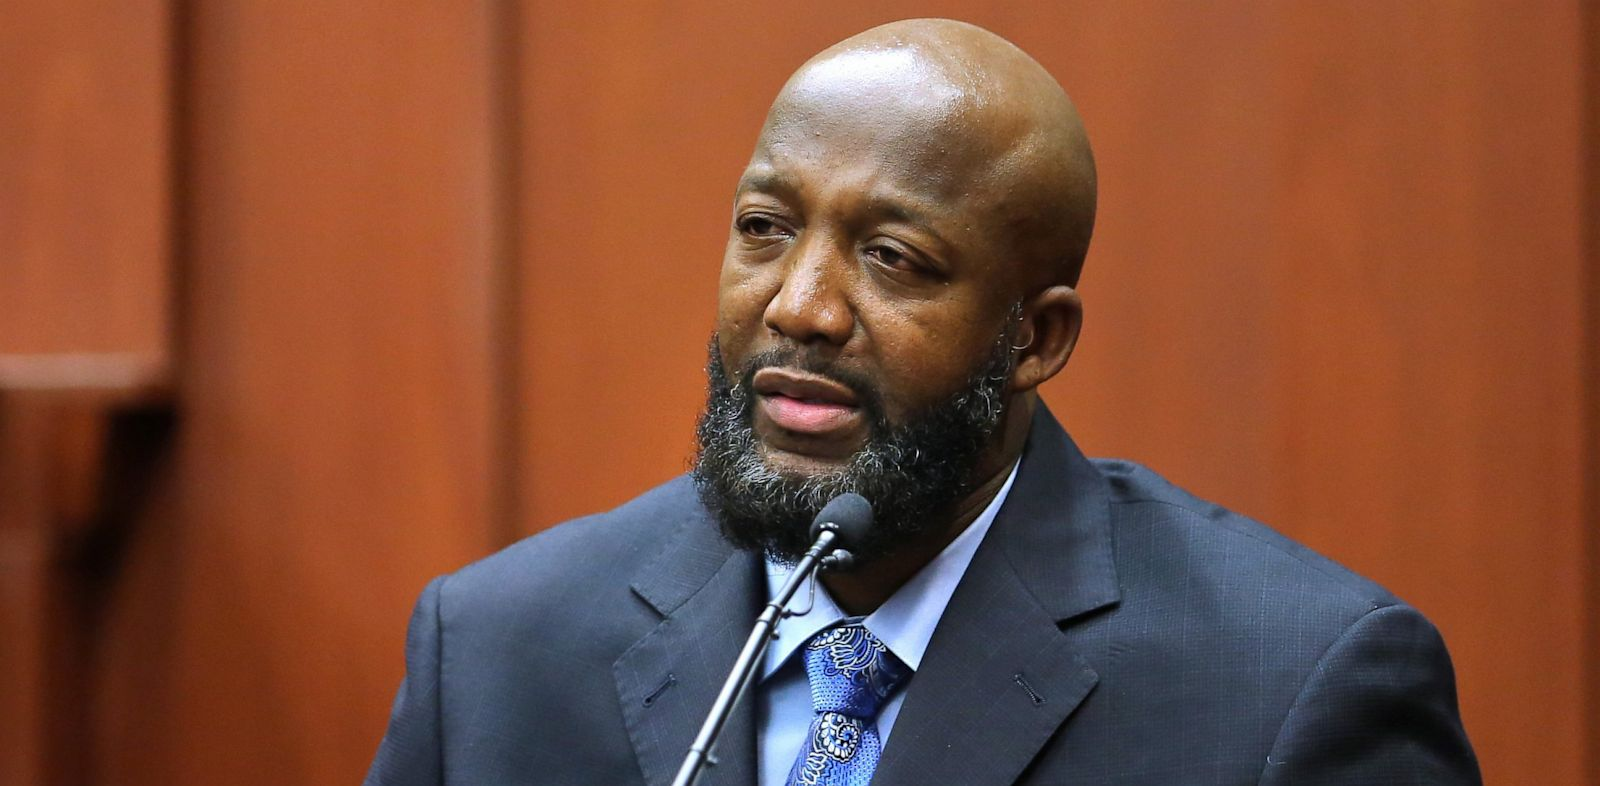 PHOTO: Tracy Martin, the father of Trayvon Martin, testifies in George Zimmermans trial at the Seminole Circuit Court, in Sanford, Fla., July 8, 2013.